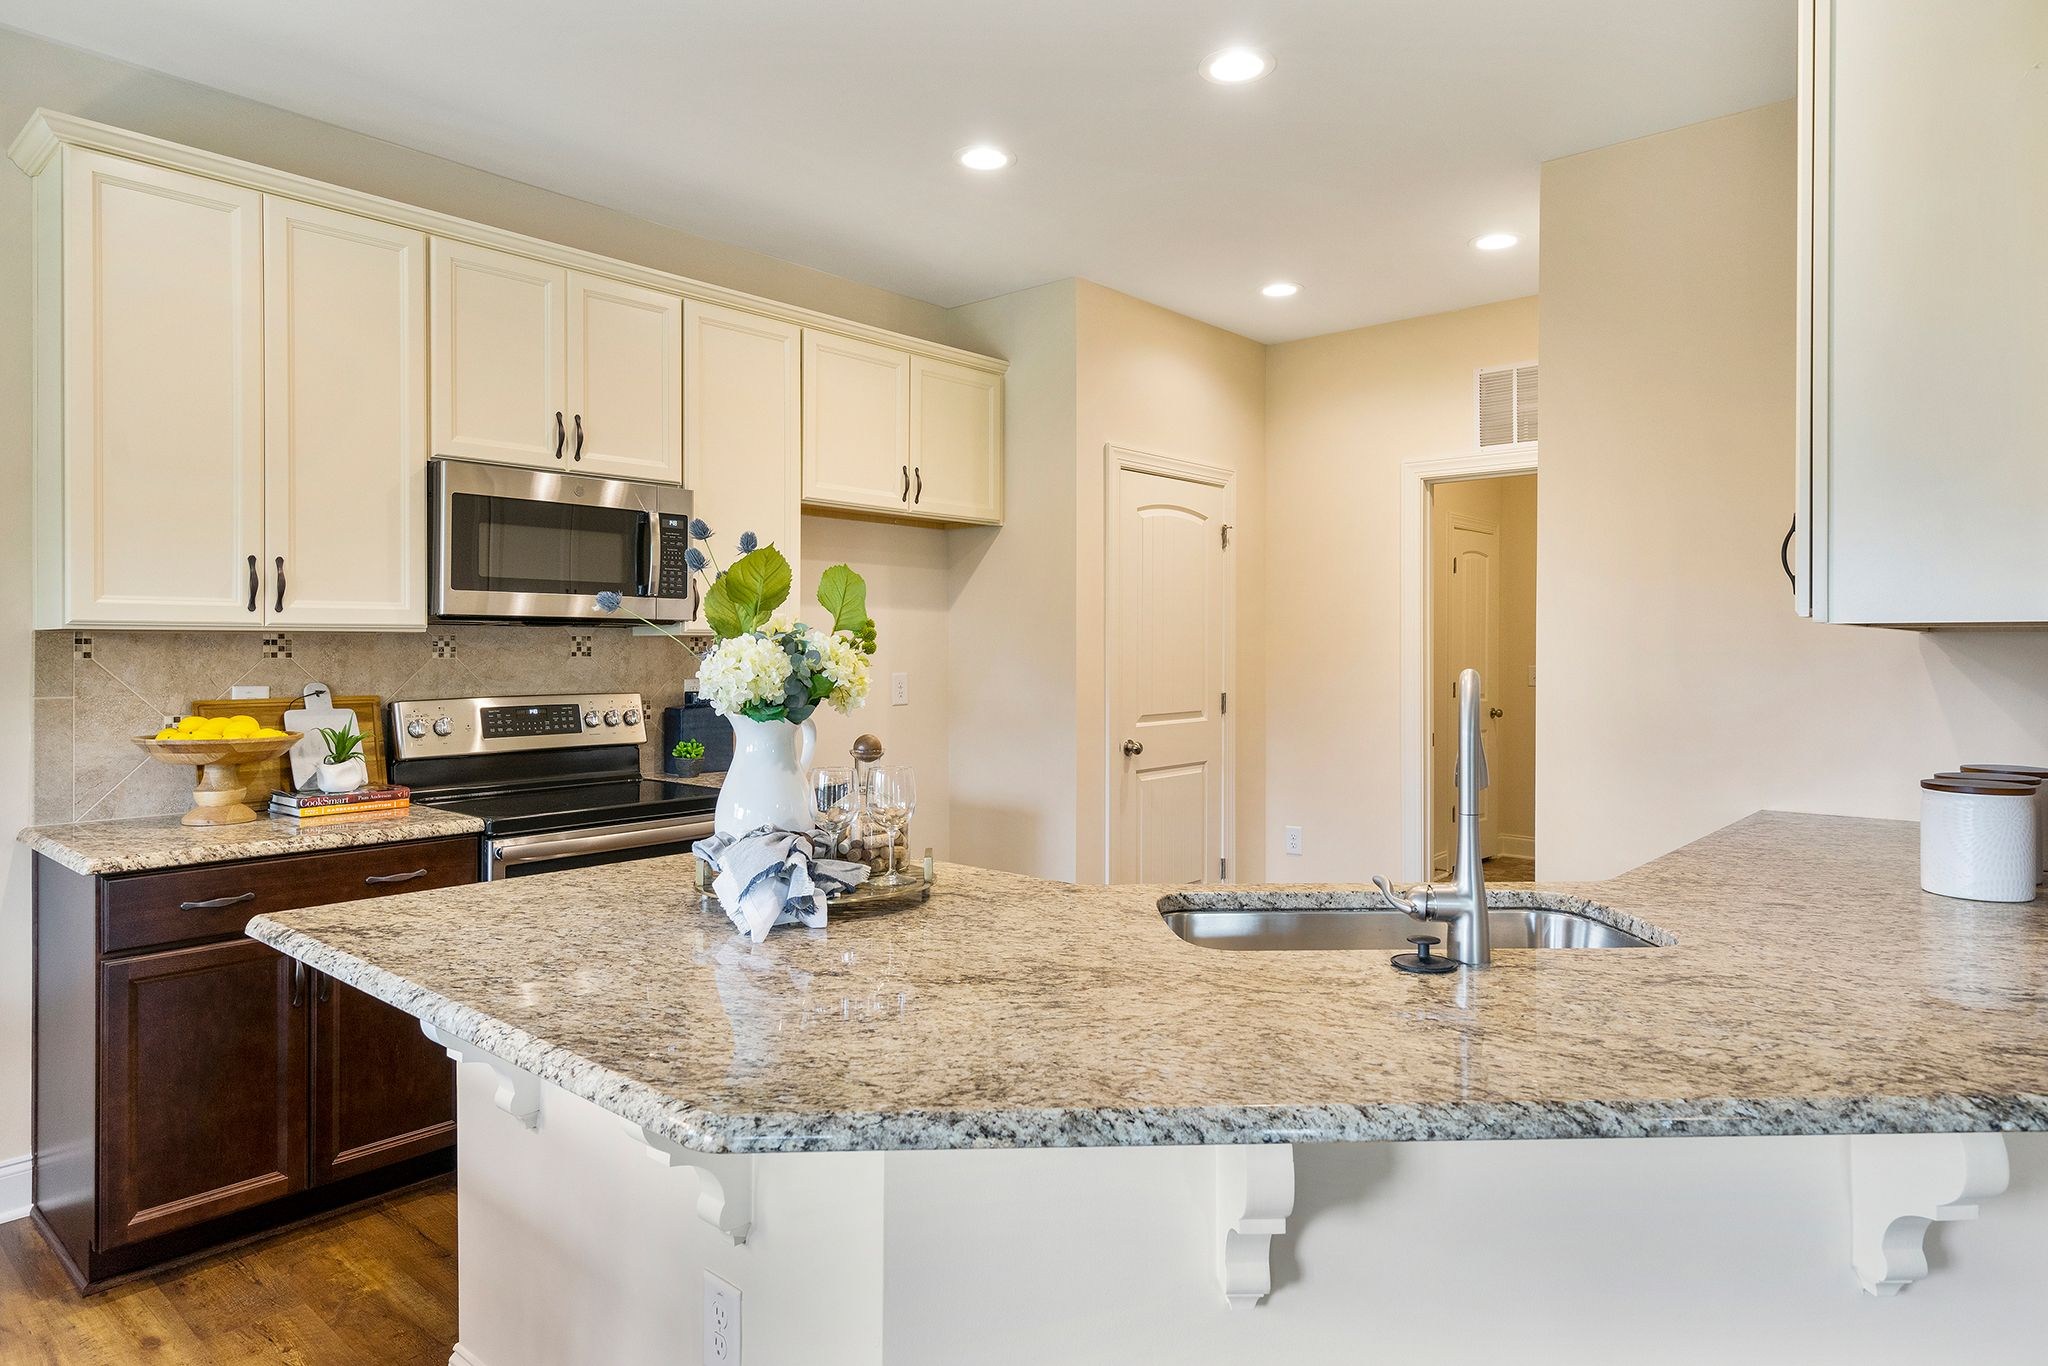 Kitchen-in-The Hanover-at-Southern Acres-in-Fuquay Varina